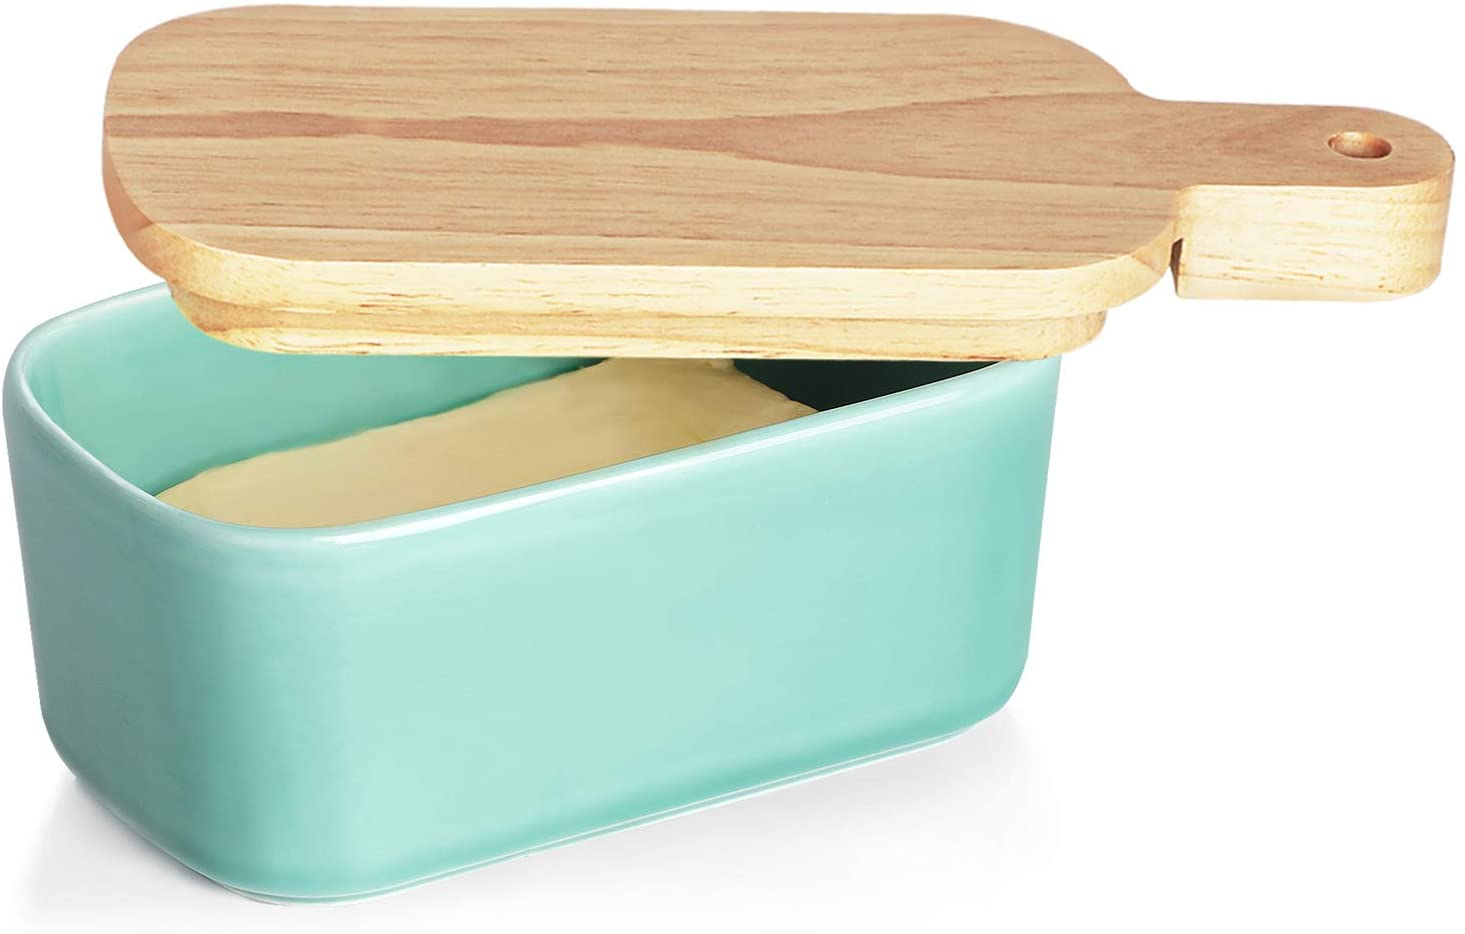 GDCZ Porcelain Butter Dish - Large Ceramics Butter Holder with Extended Wooden Lid (2 Sticks of Butter), Turquoise